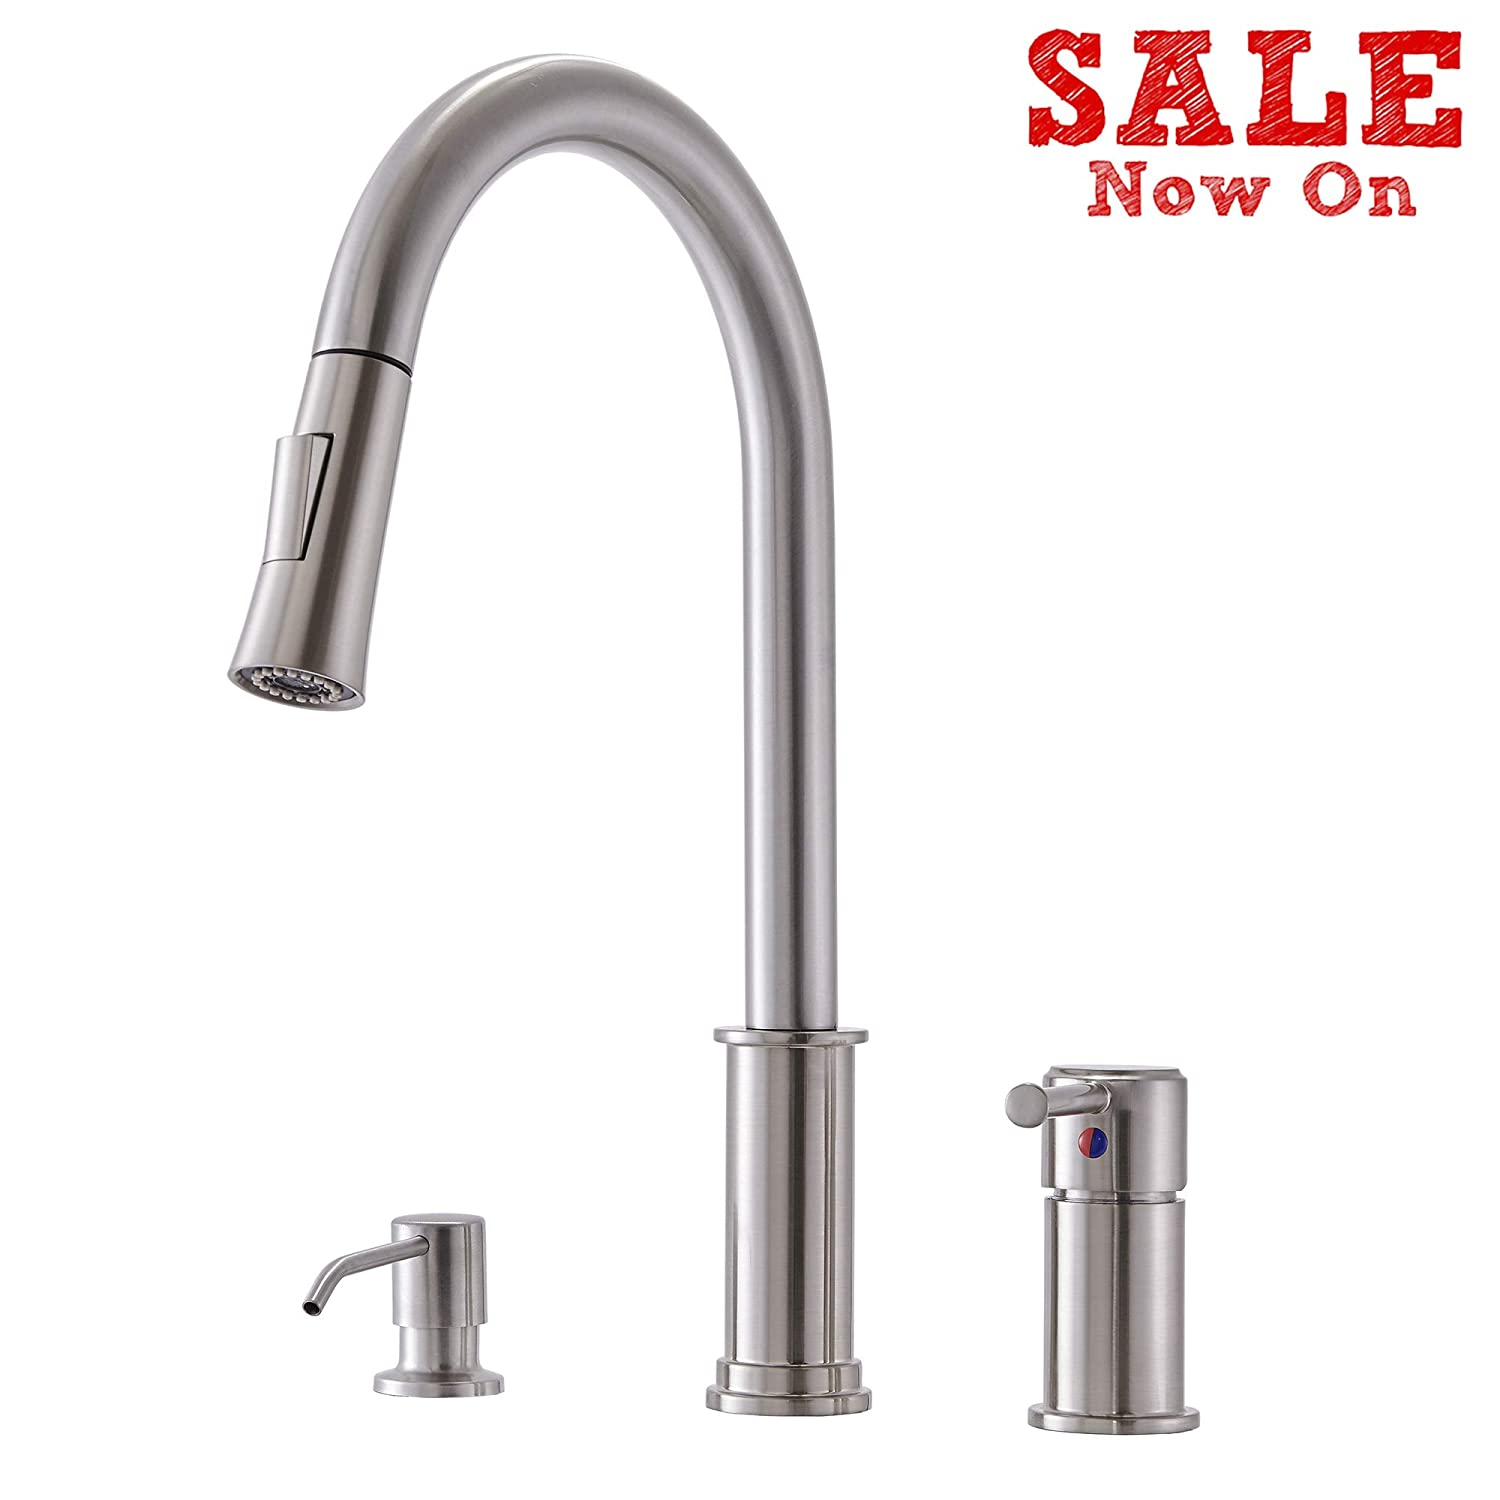 Comllen 3 Hole Modern High Arc Pull Out Brushed Nickel Kitchen Faucet,  Brushed Nickel Kitchen Faucet with Soap Dispenser